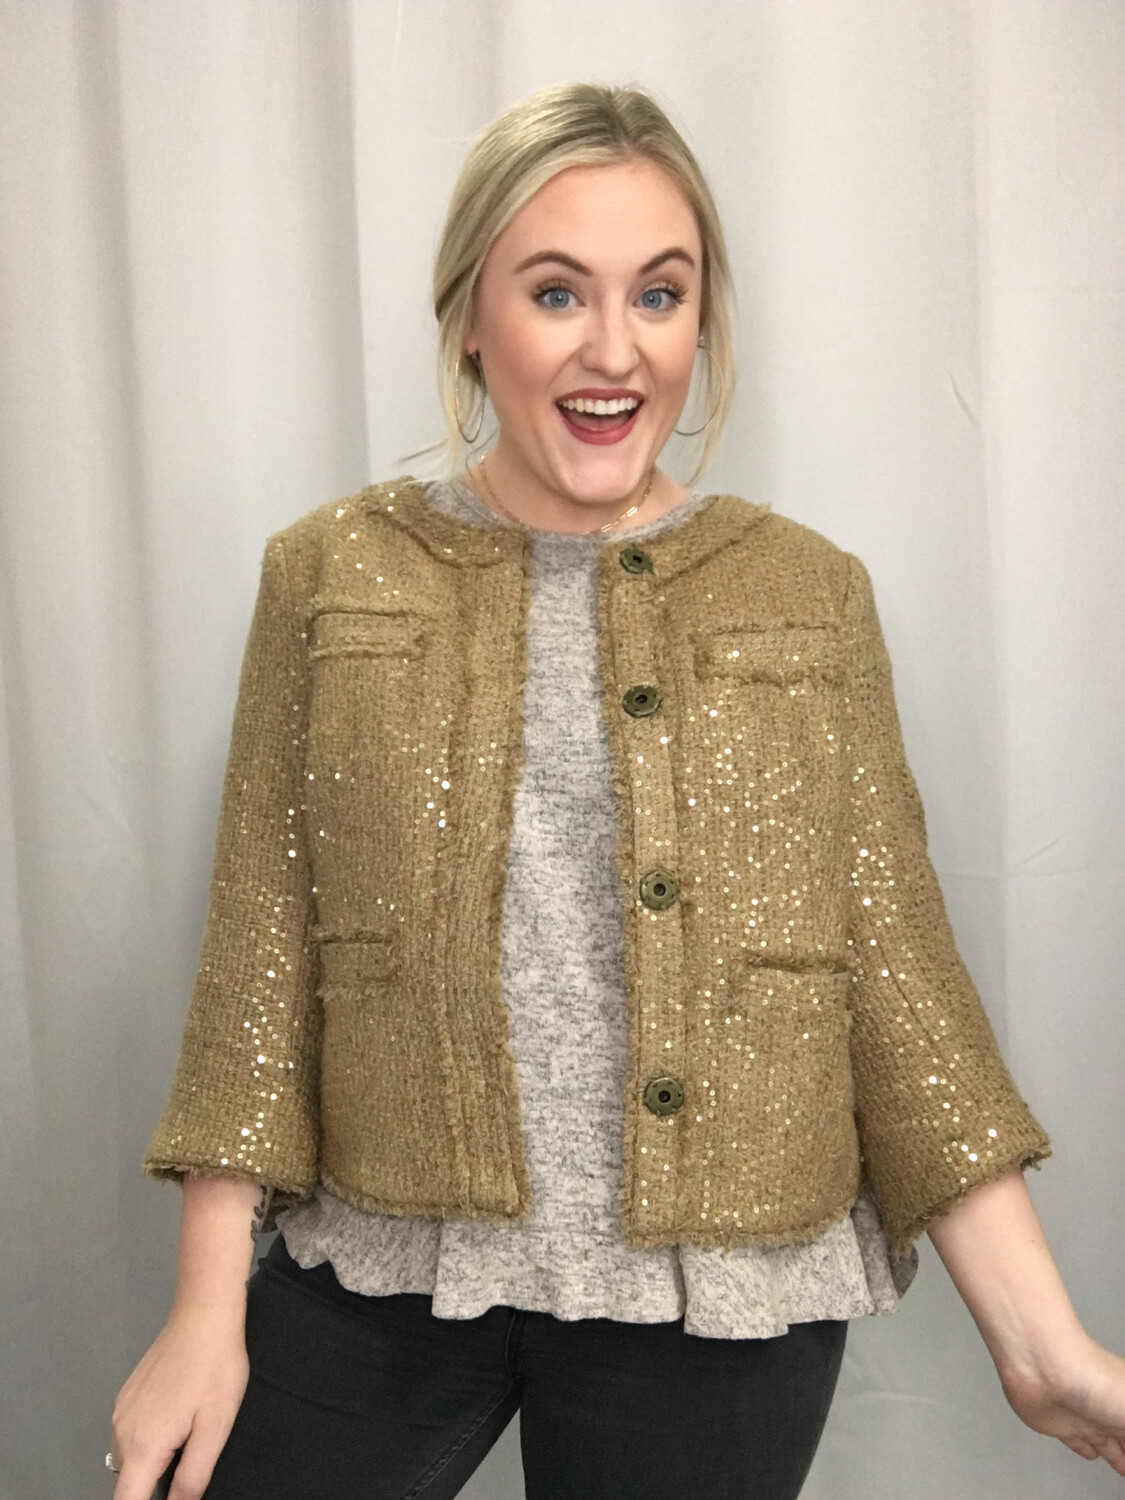 Michael Kors Tweed Sequin Blazer - Size 8